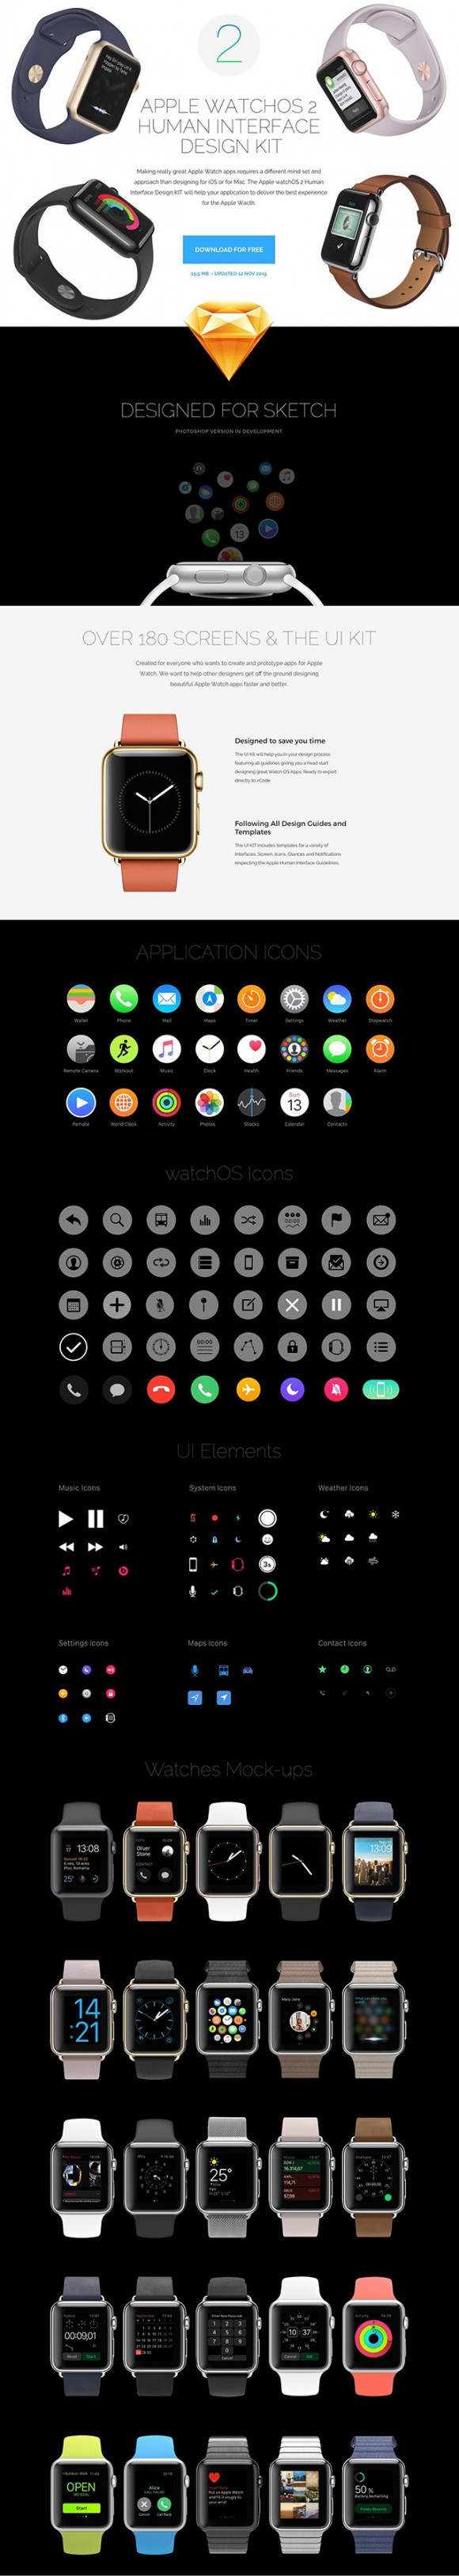 WatchOS 2 full preview